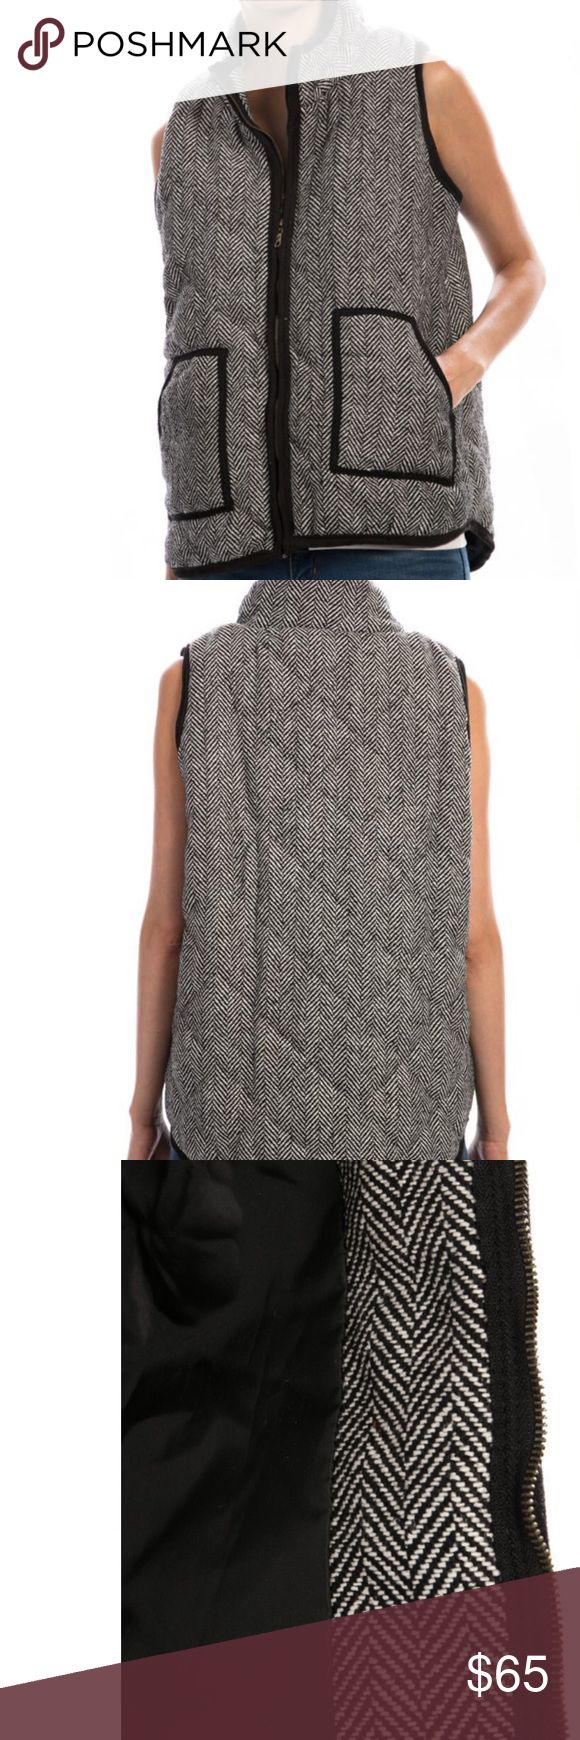 Black Herringbone Vest With Piping NWT Great Black Herringbone Vest With Black Contrast Piping is Perfect For Layering.   Zip Up. 24 Inches Long.  100% Cotton. Jackets & Coats Vests